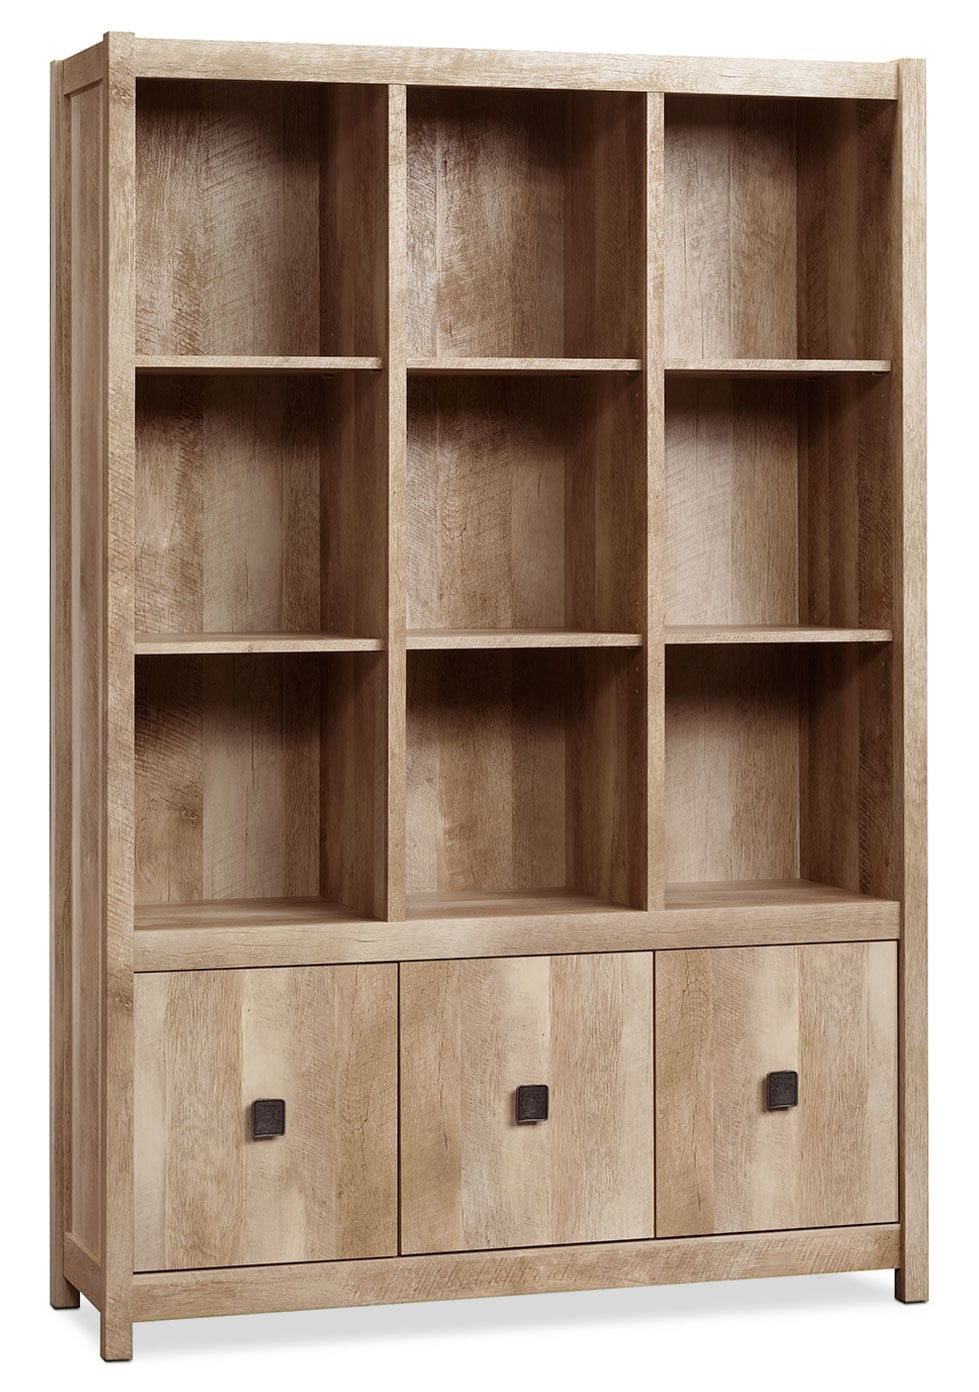 Home Office Furniture - Cannery Bridge Bookcase